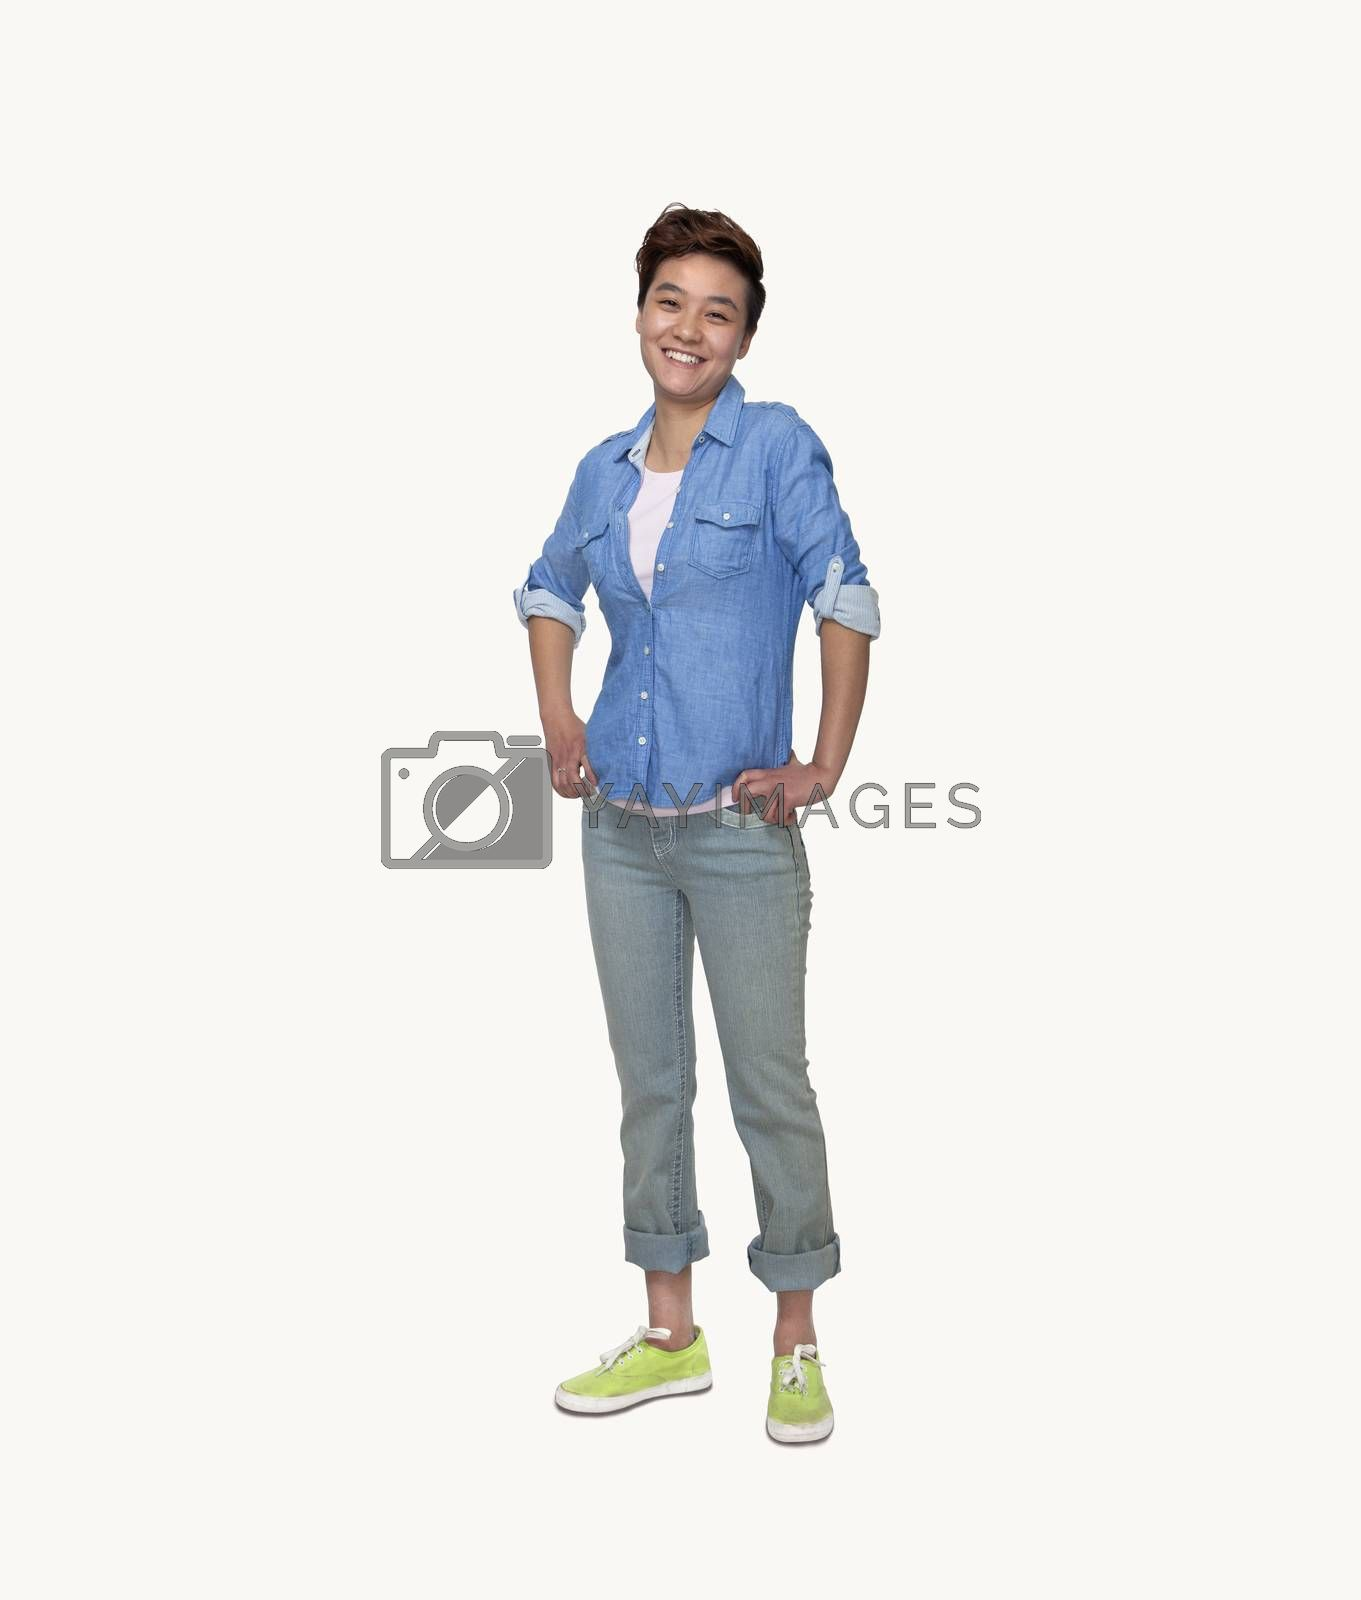 Portrait of smiling young woman in casual clothing, hands on hips, full length, studio shot